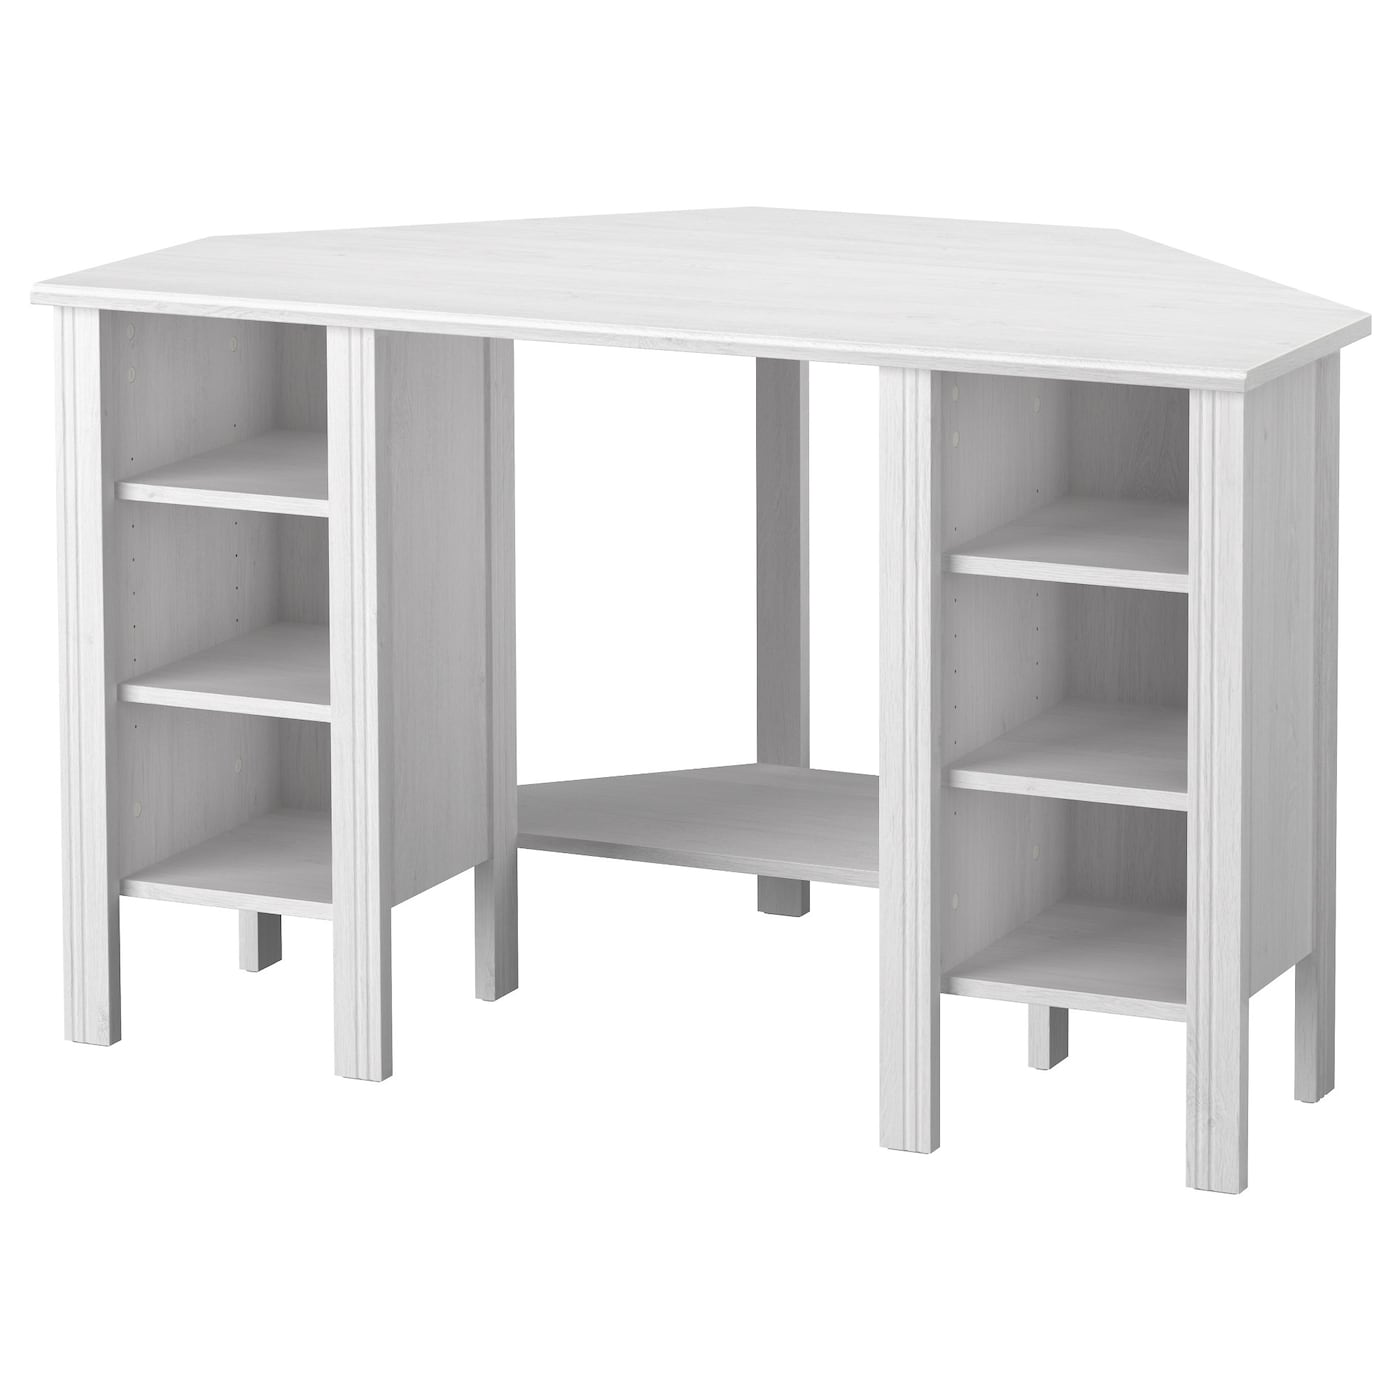 Design Ikea Corner Desk brusali corner desk white 120x73 cm ikea you can customise your storage as needed since the shelves are